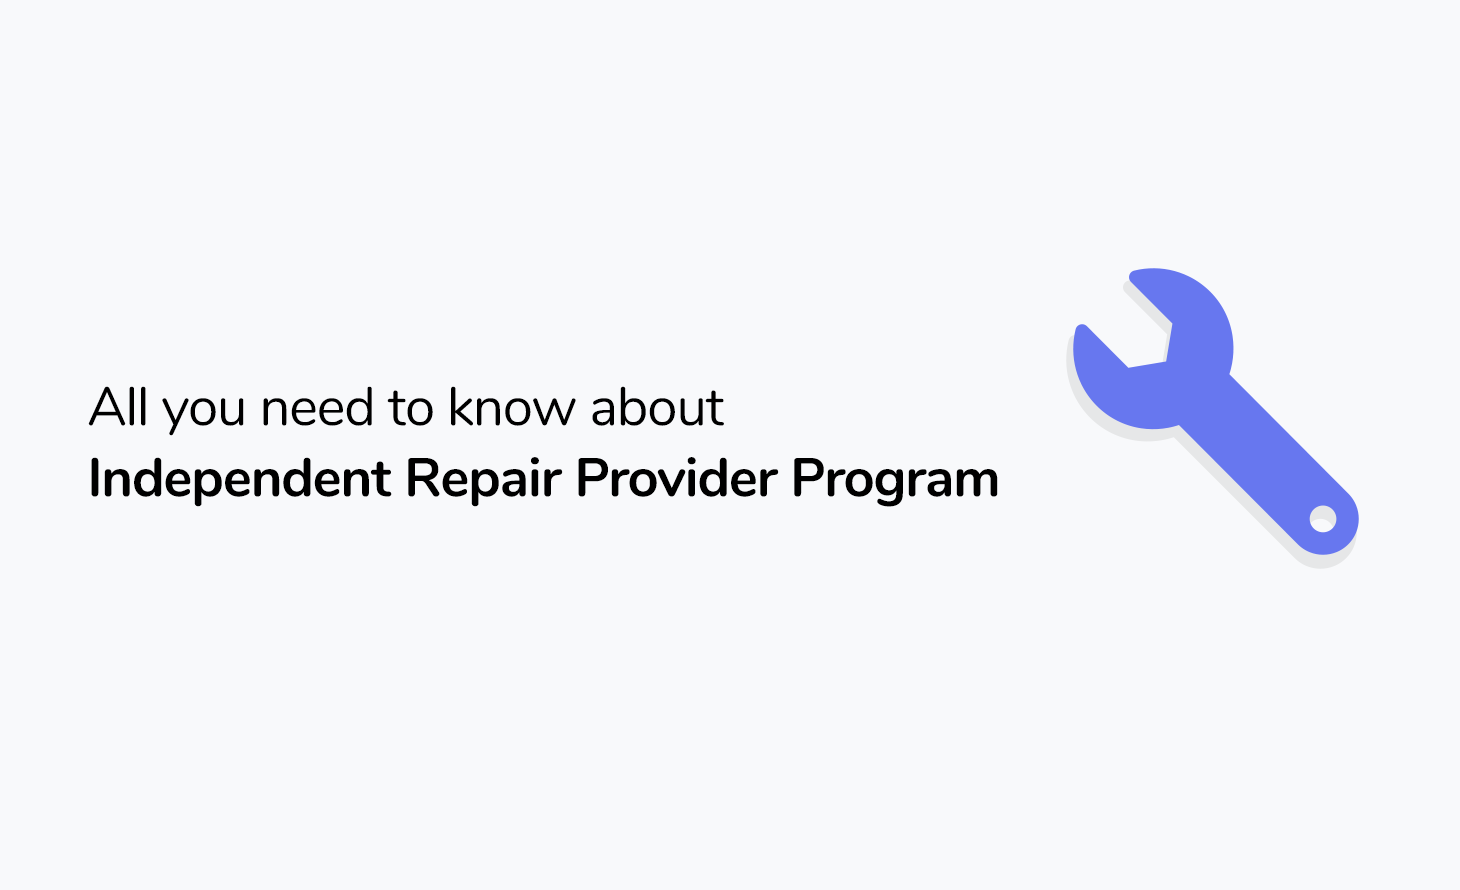 All you need to know about the new Apple's Independent Repair Provider Program